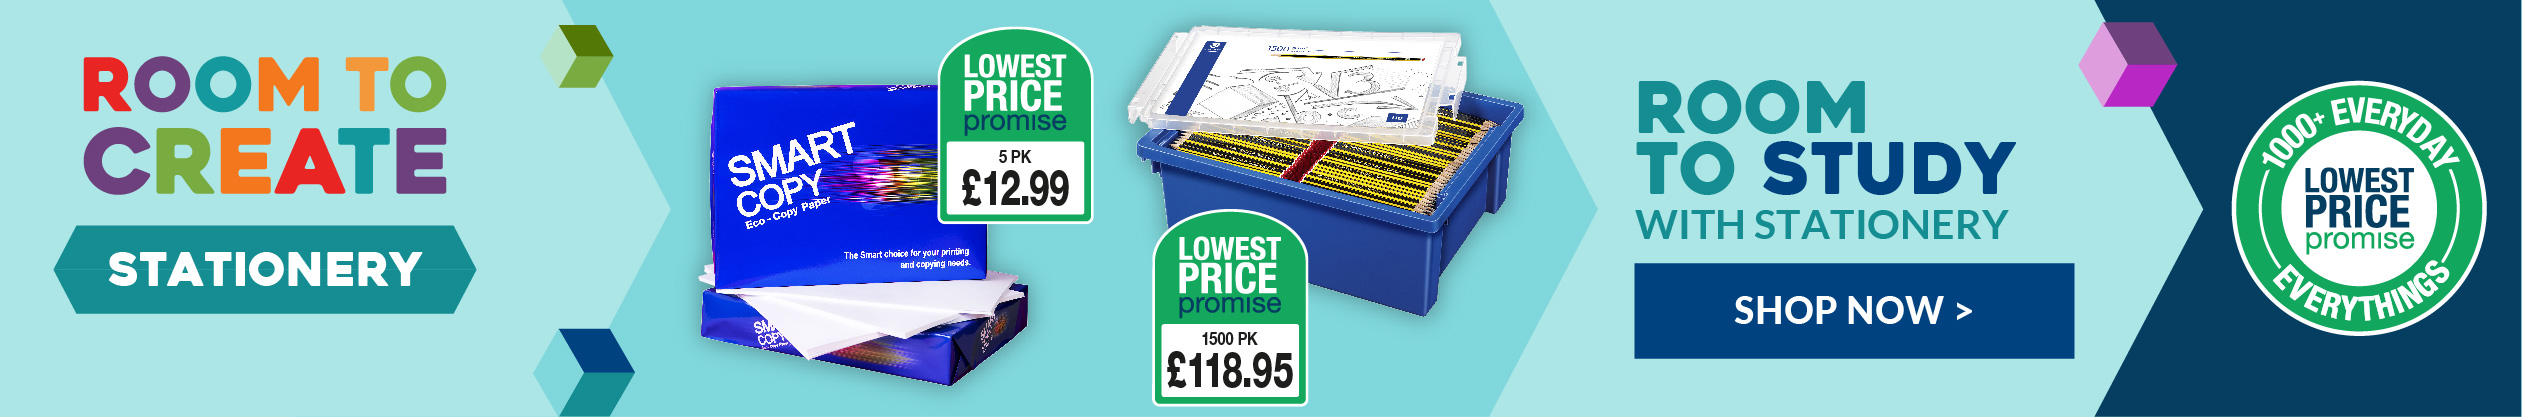 Everyday low prices and price guarantee on Stationery. Shop Now.